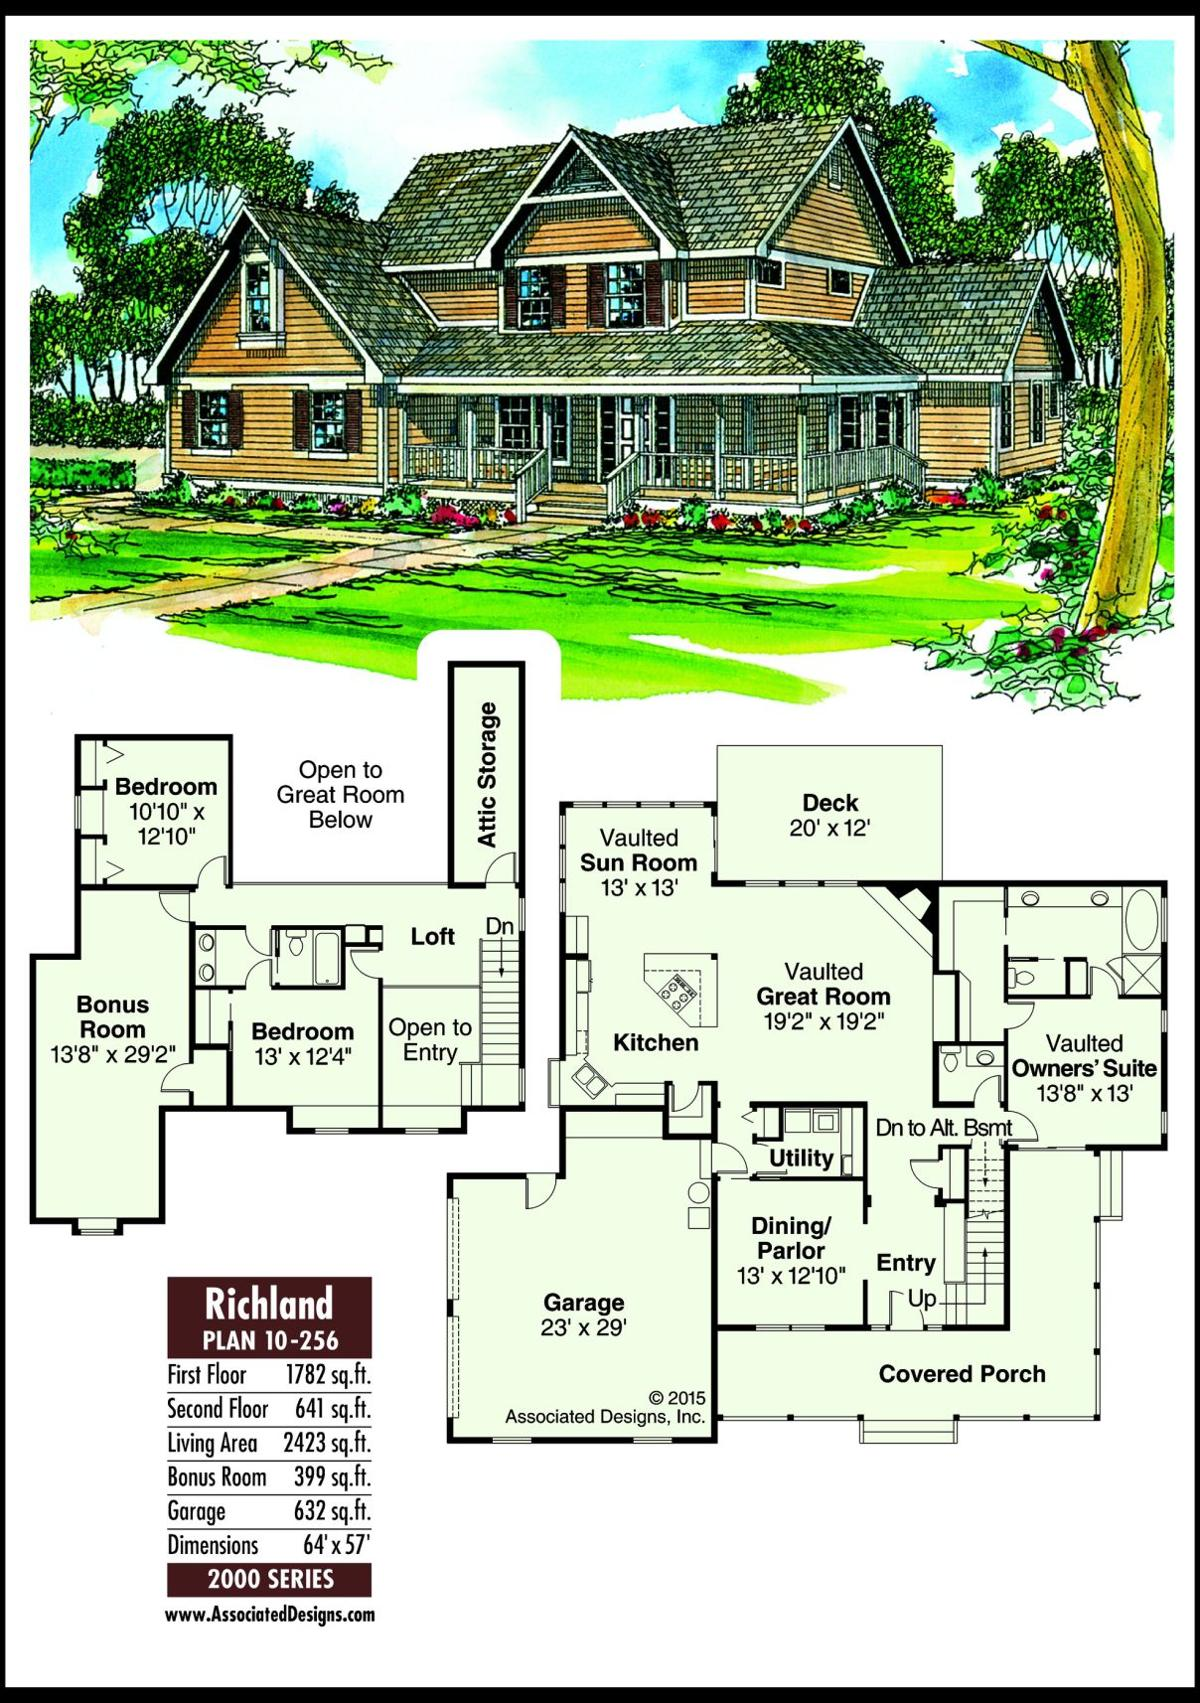 This week's house plan Richland 10-256